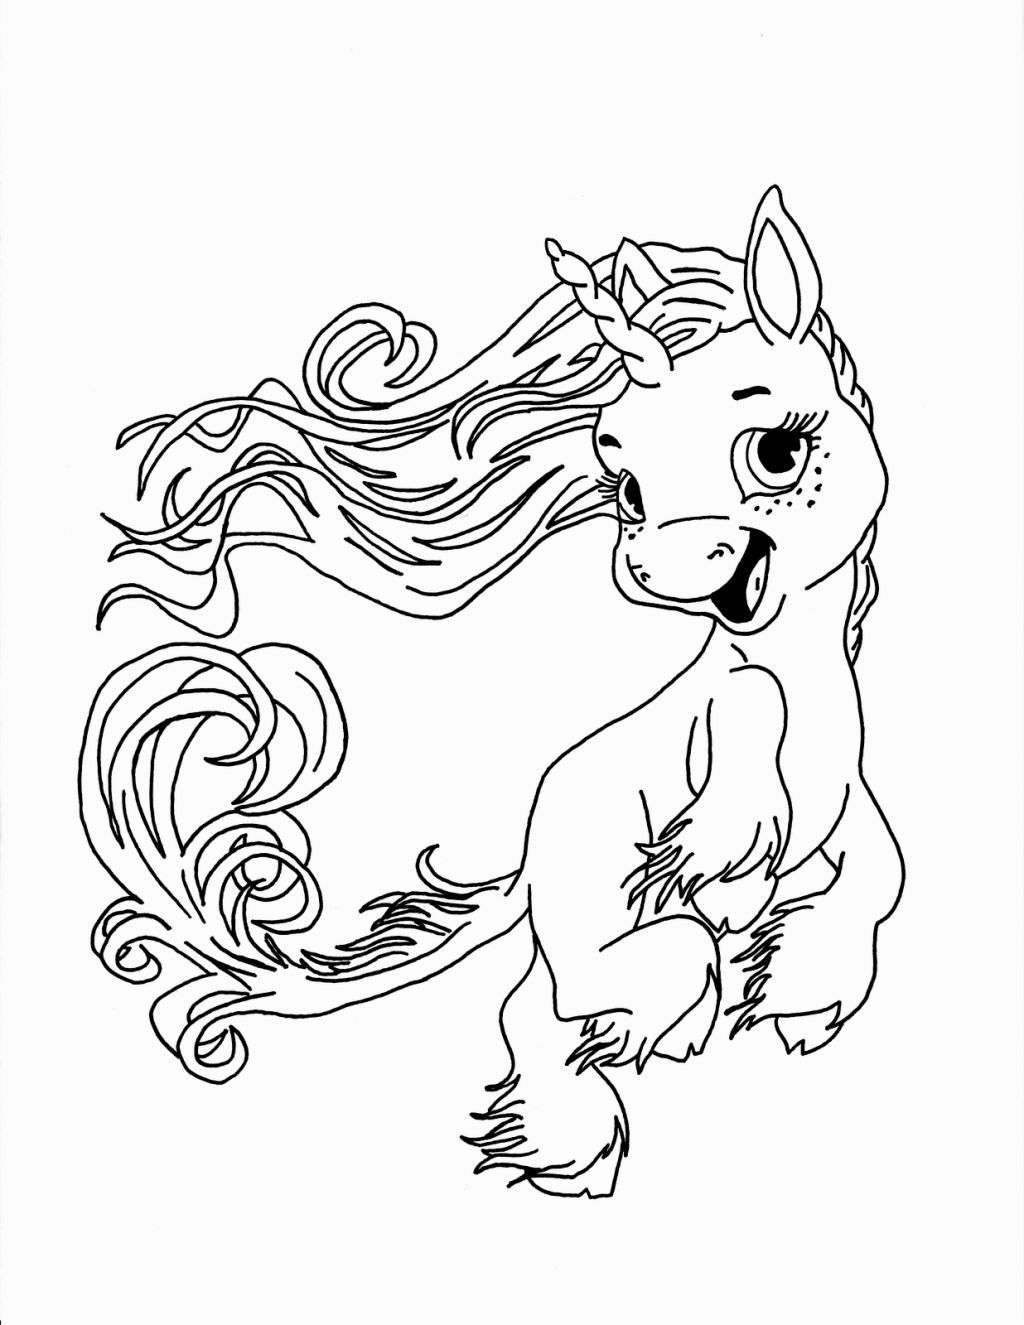 unicorn coloring pages printables - photo#25